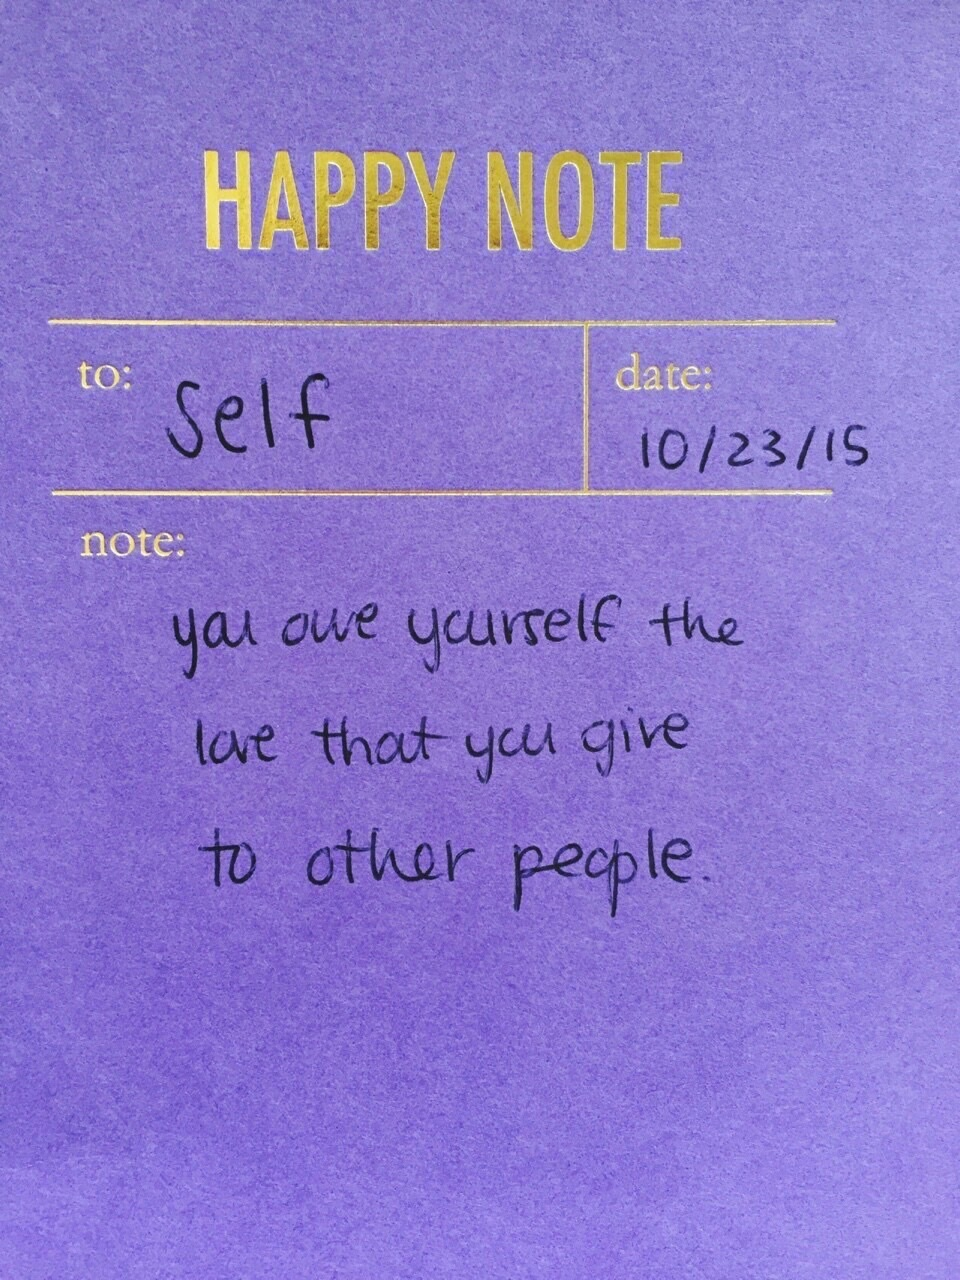 give, self and note